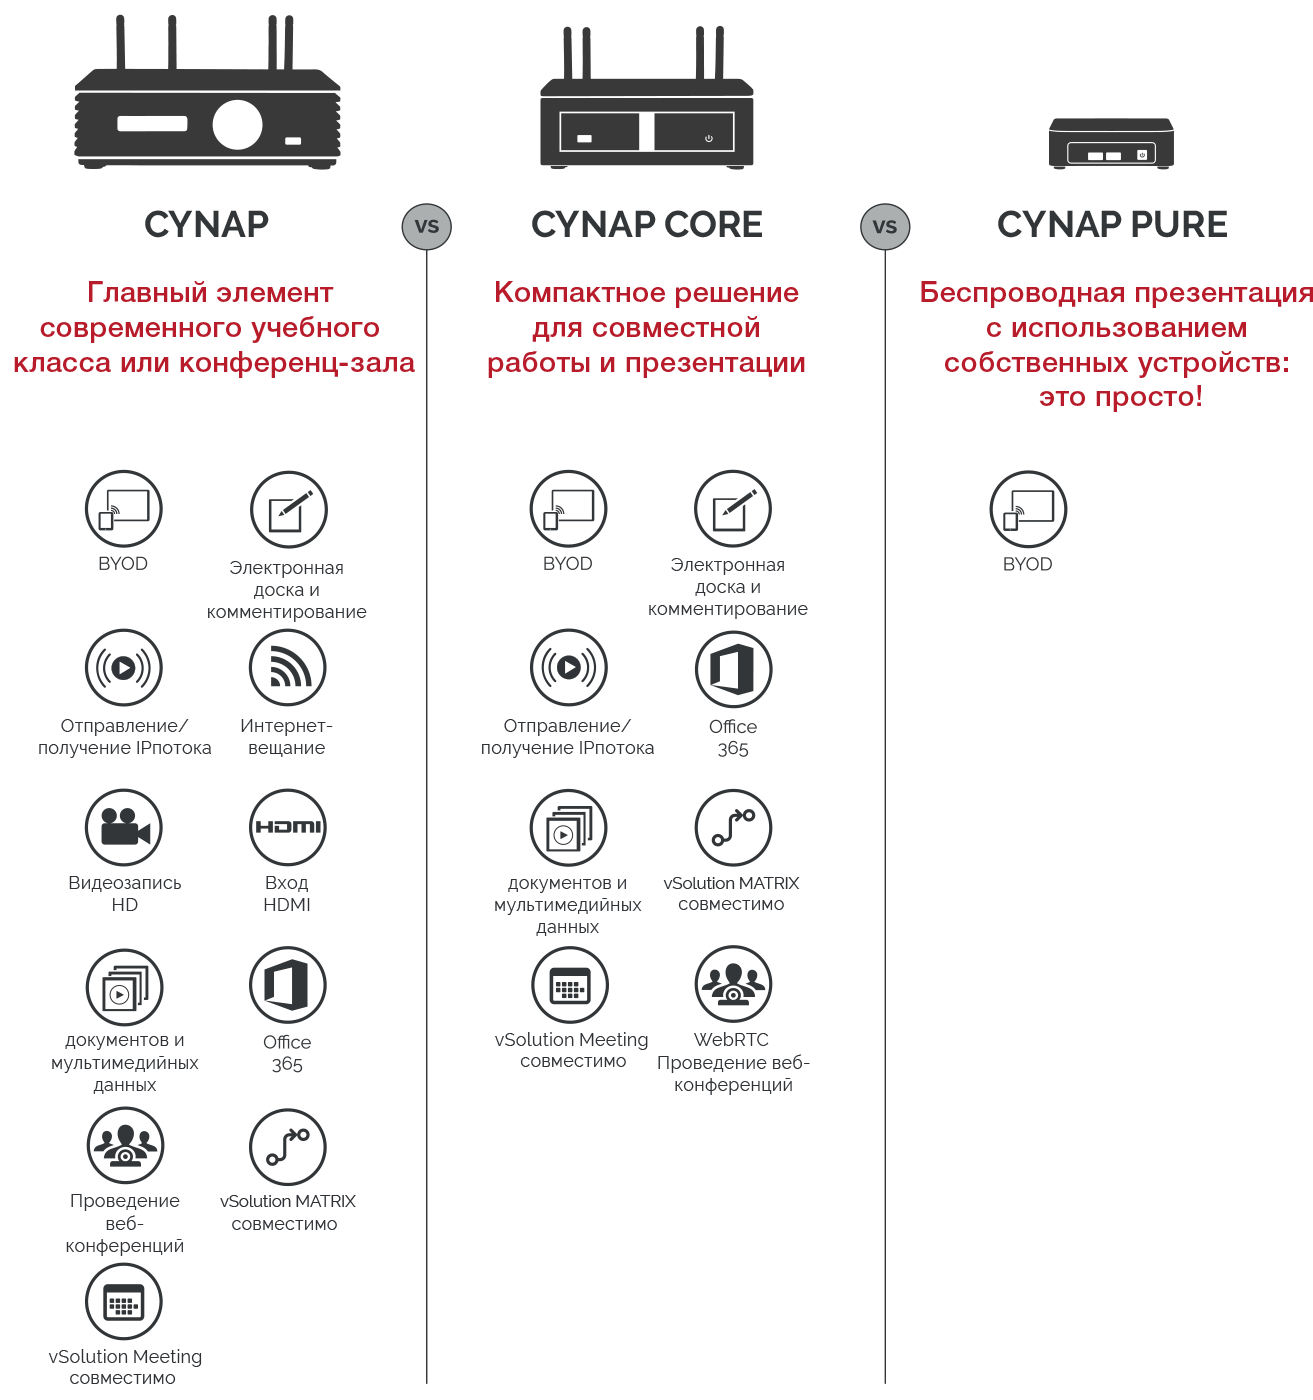 Cynap System Comparison